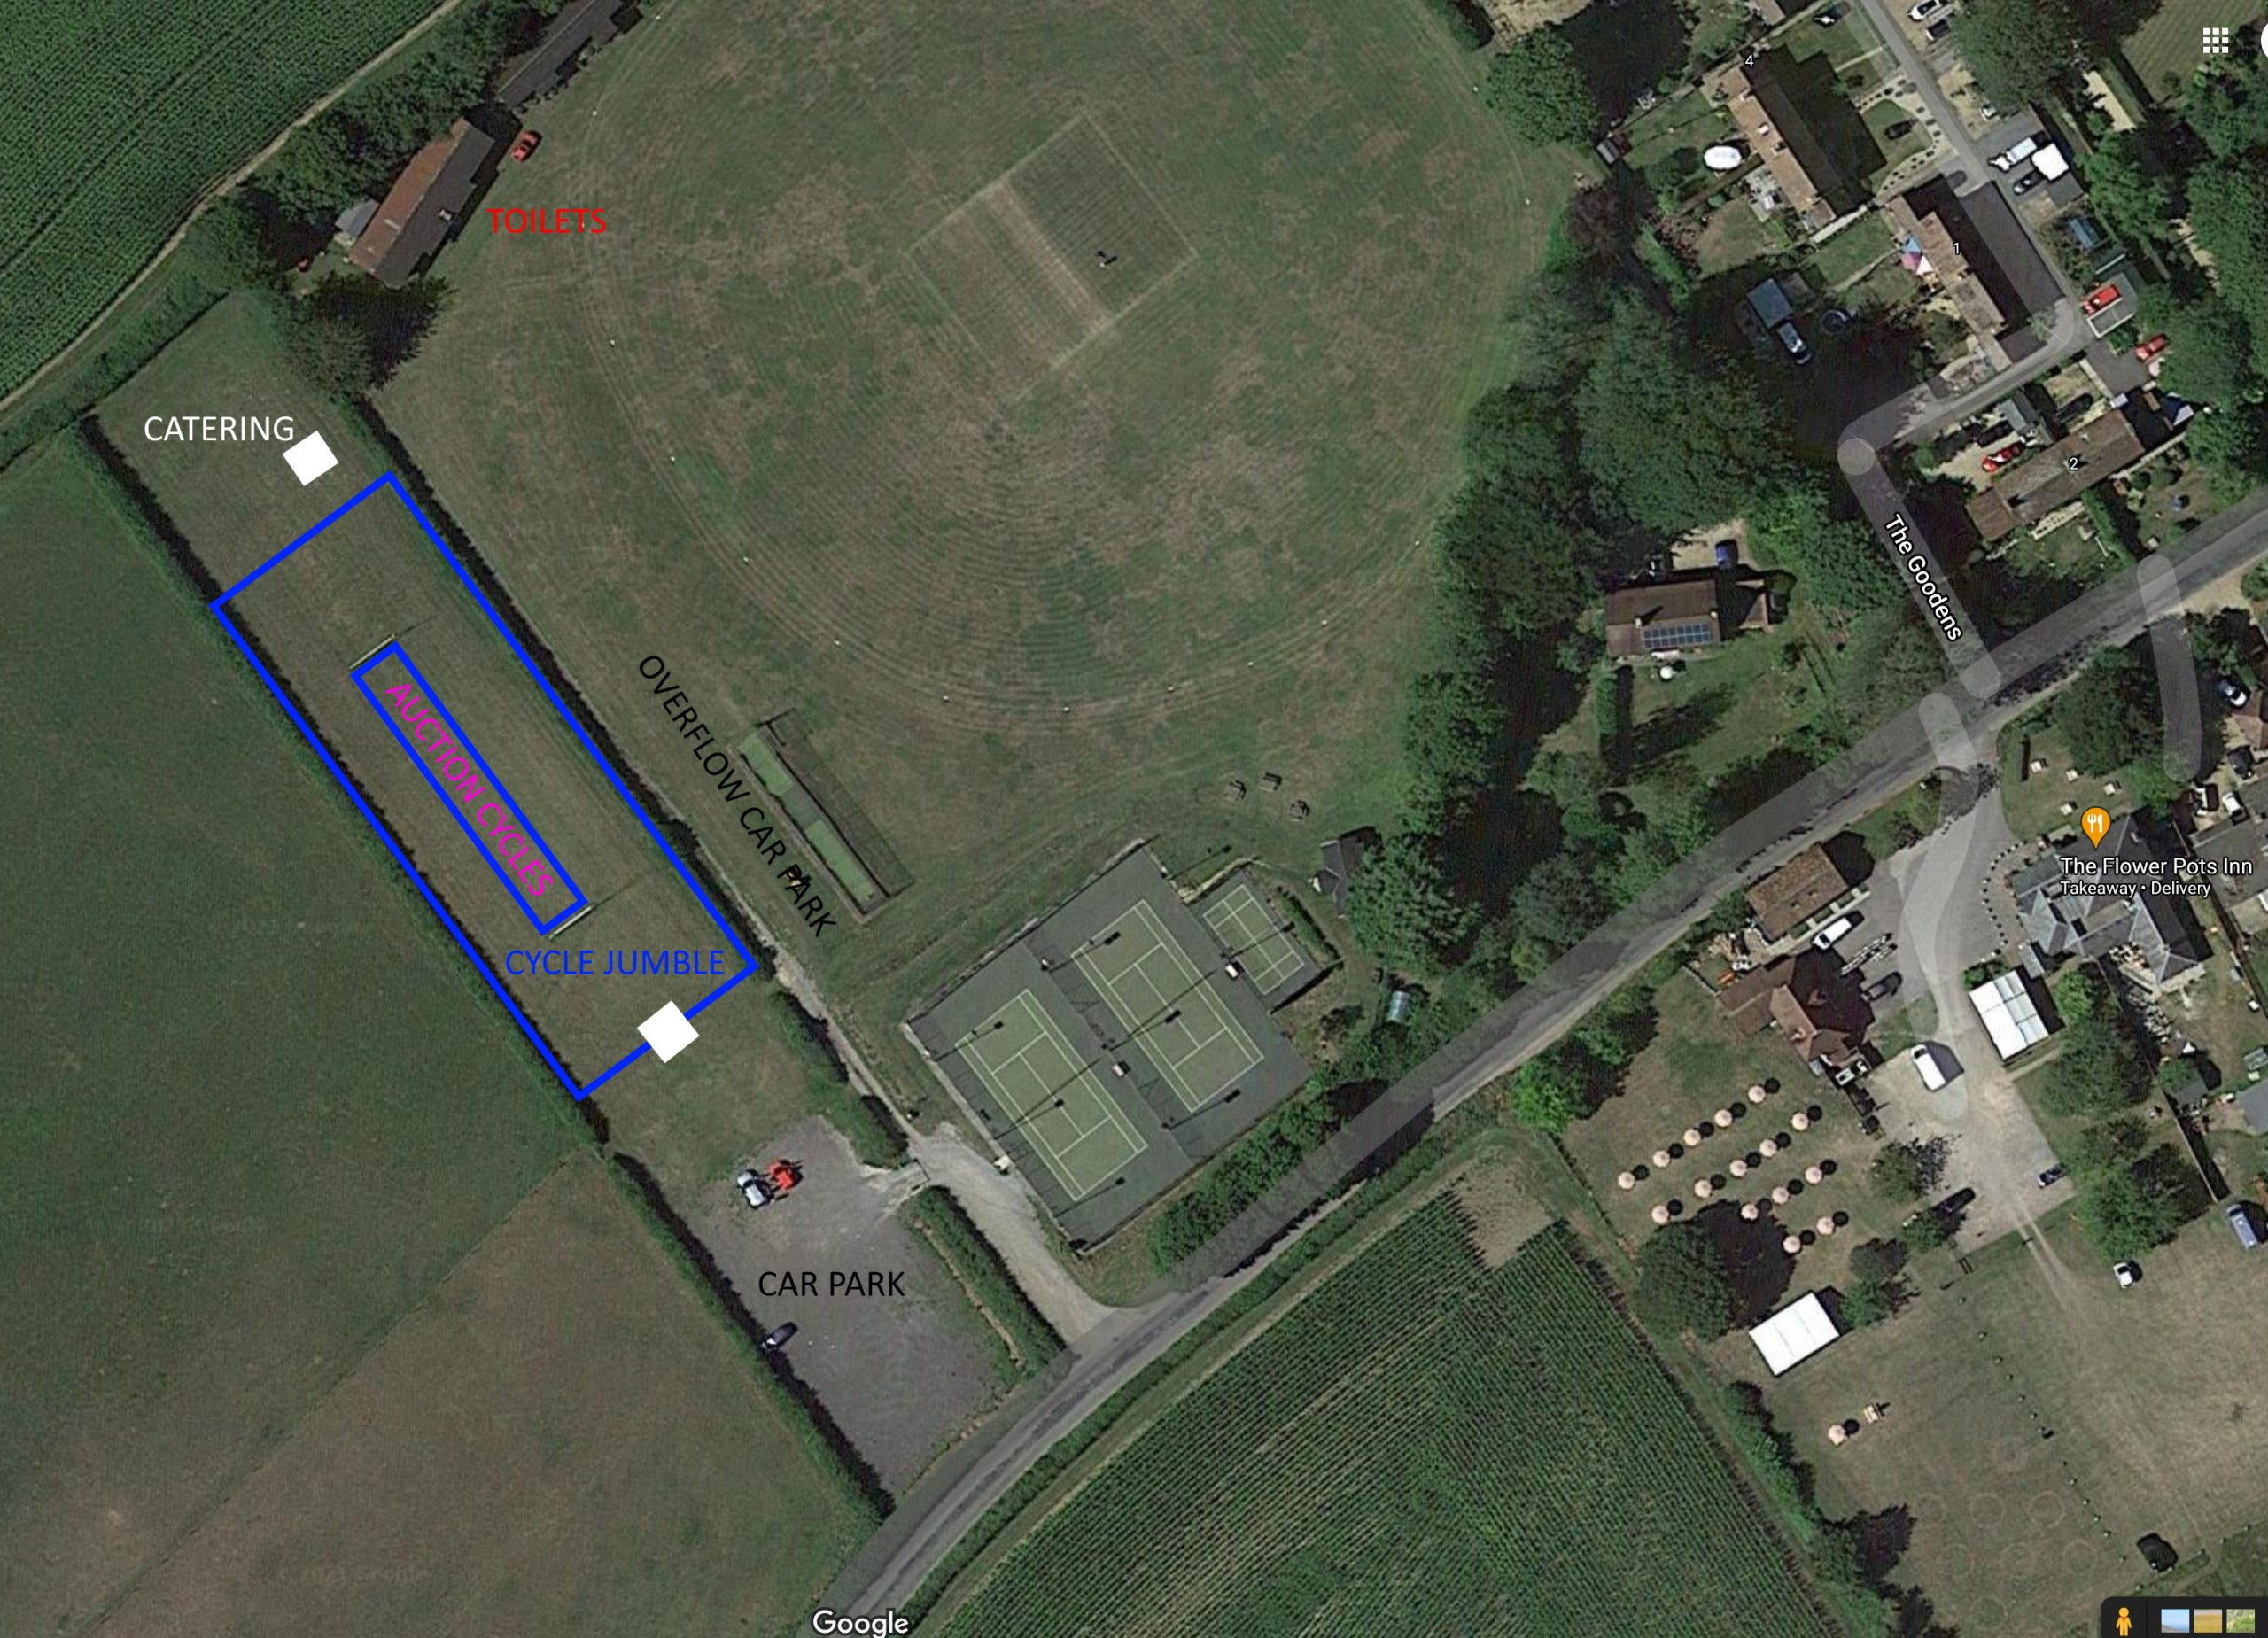 Cycle Jumble and Auction Site PLan